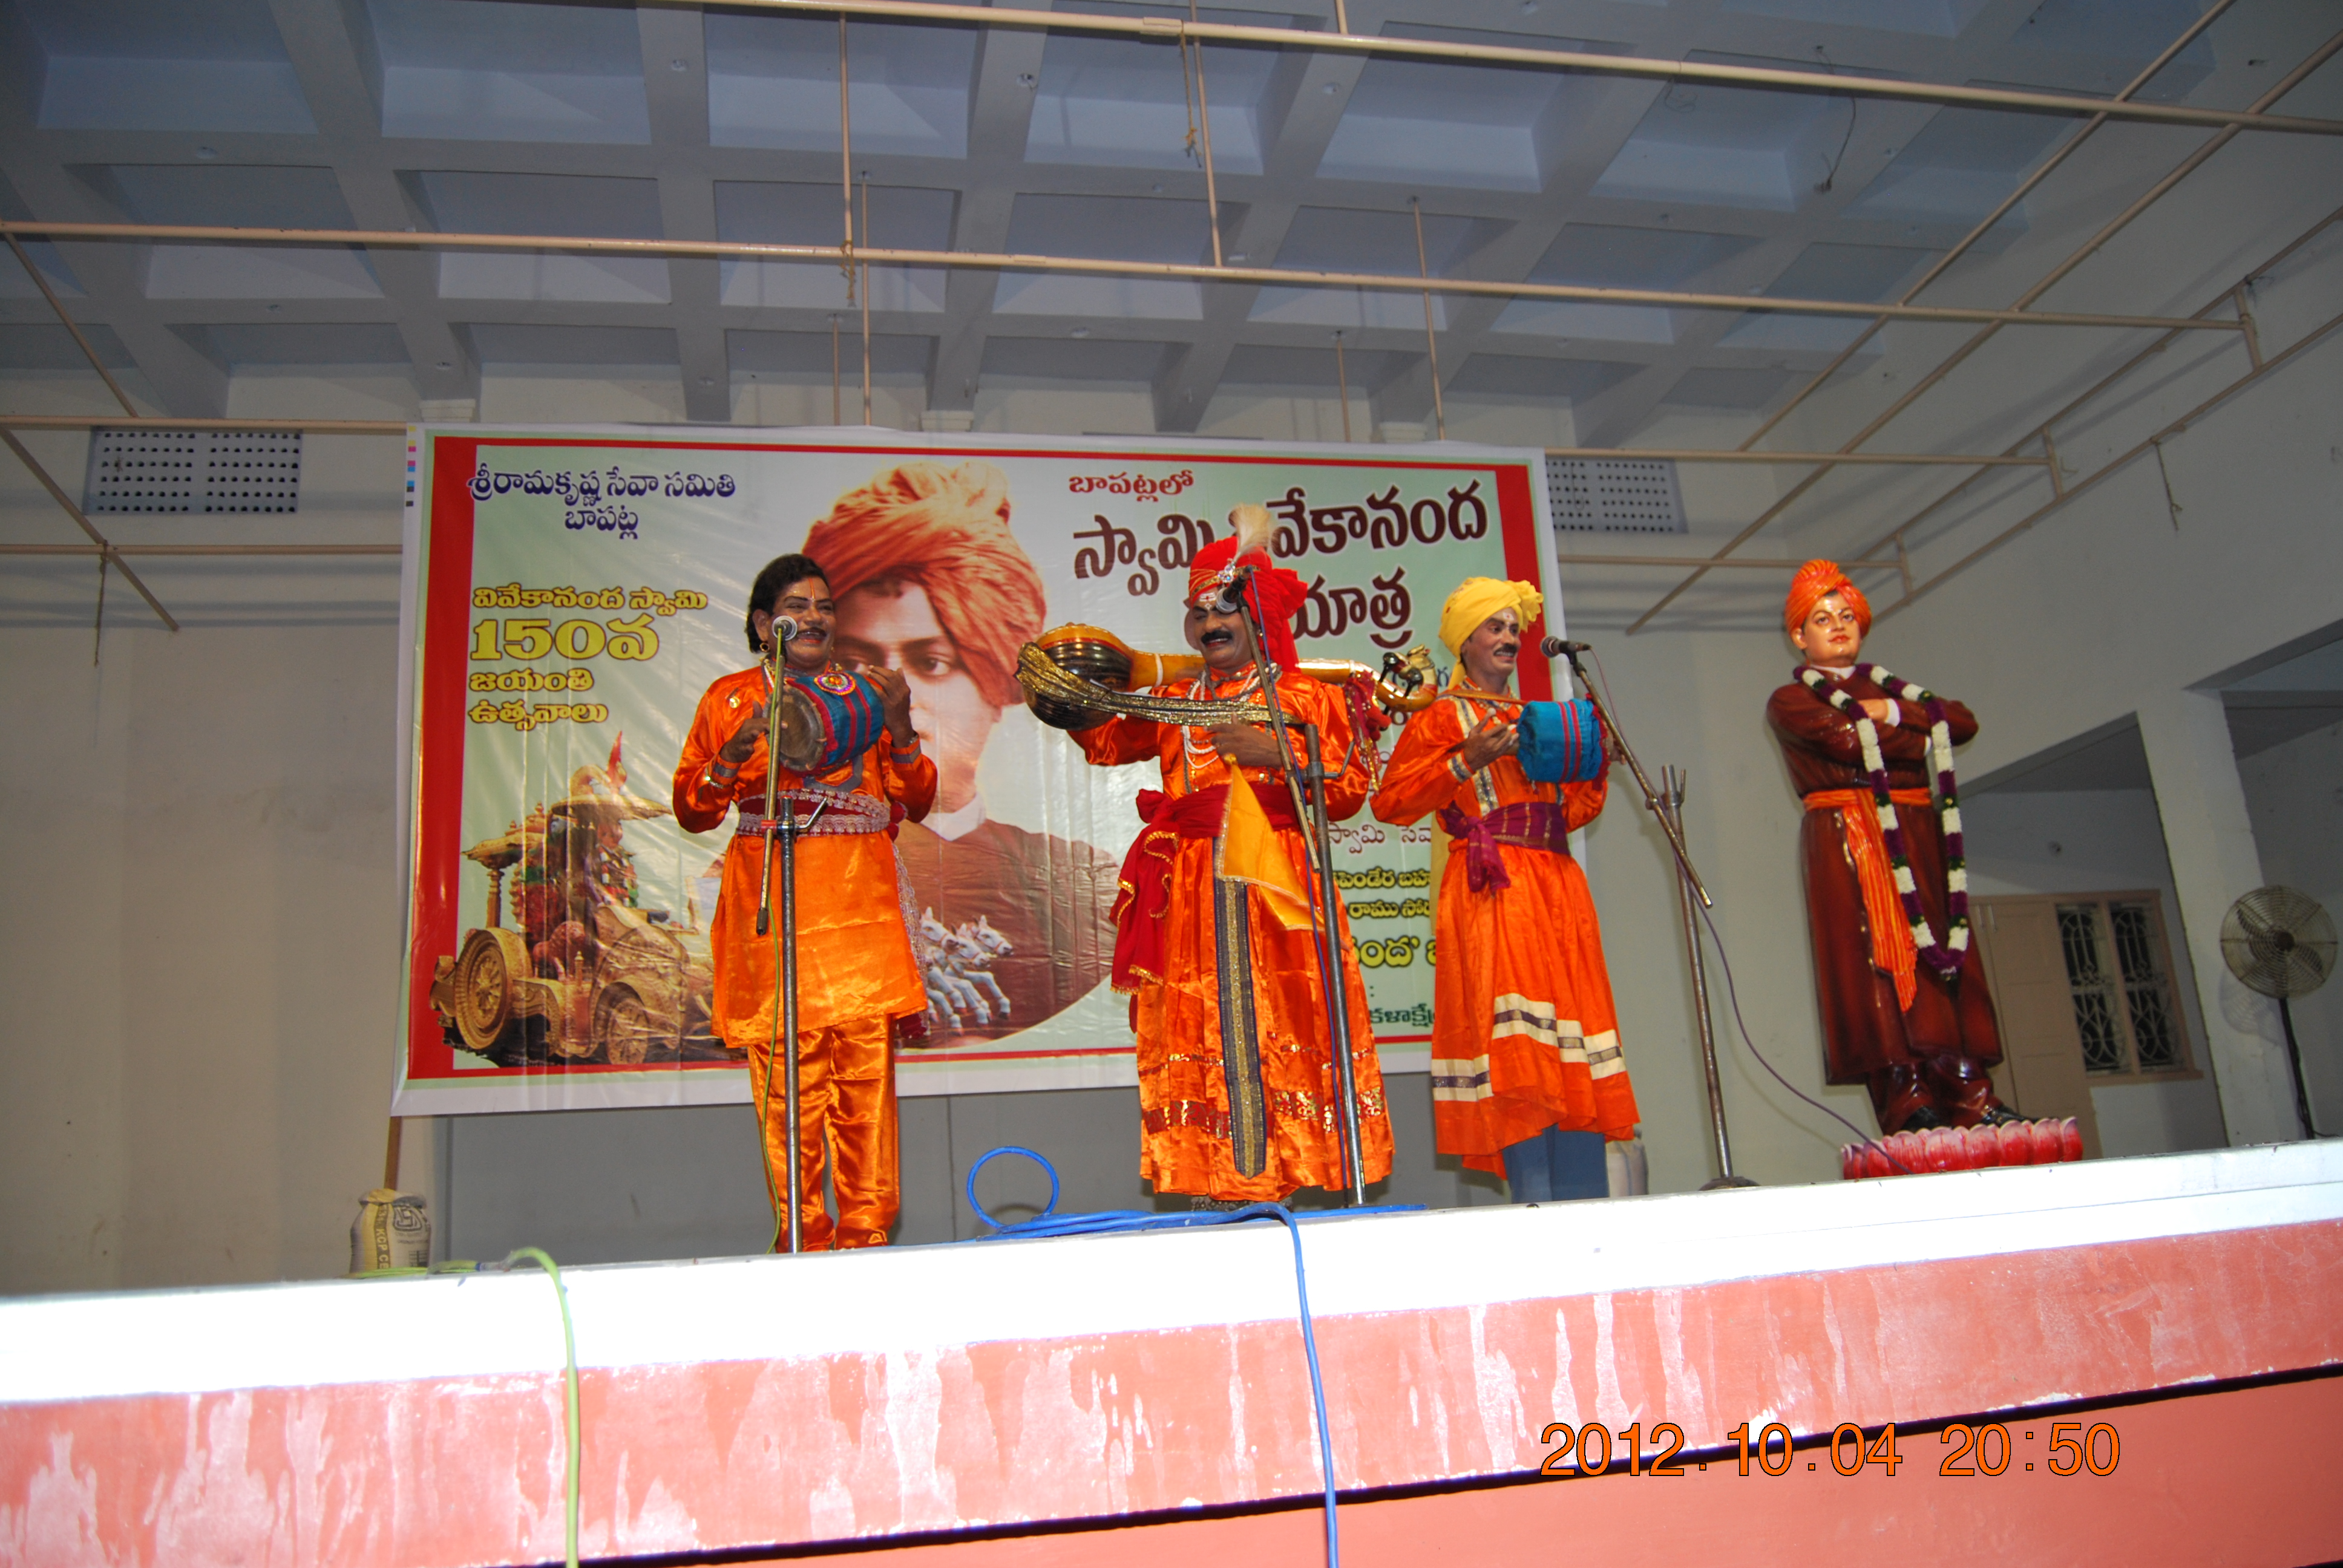 Burra Katha on Swami Vivekananda by Gorrela Ramu and group in Kona Kalaskhetram